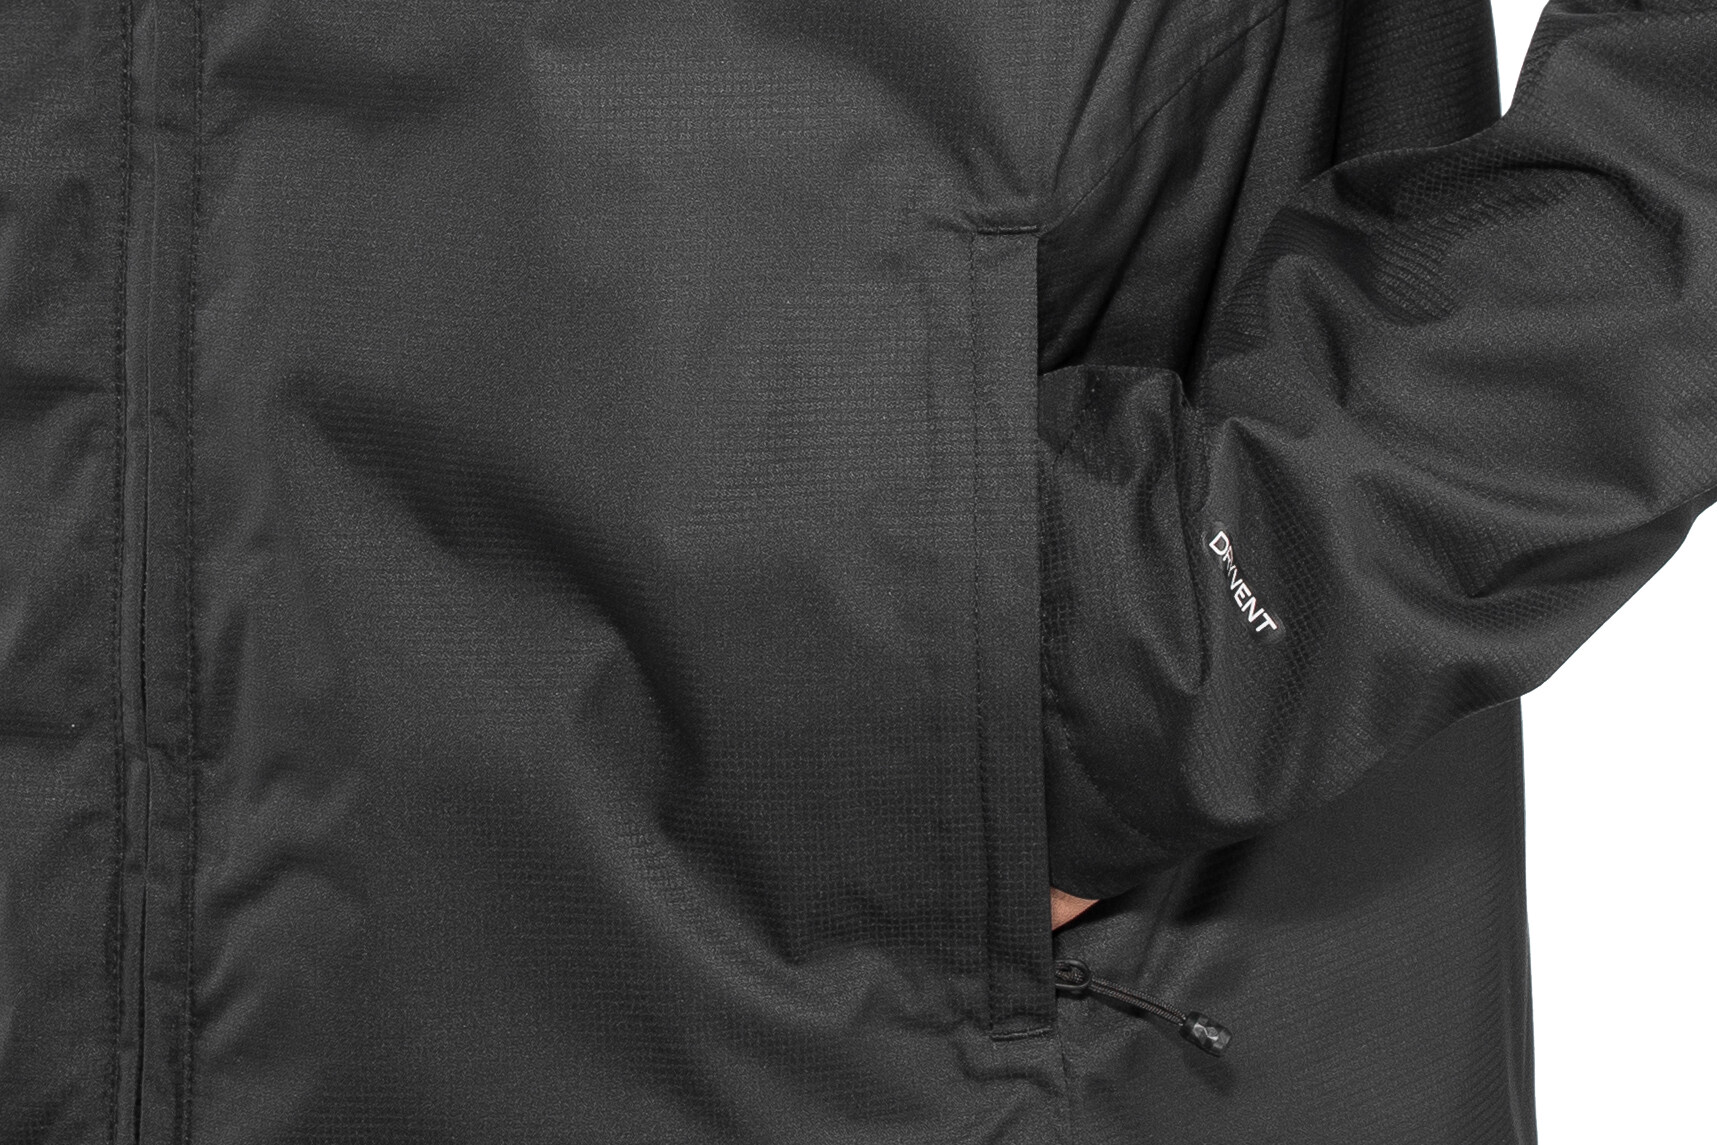 b9411d8c6b6 The North Face Frost Peak II Jacket Men black at Addnature.co.uk